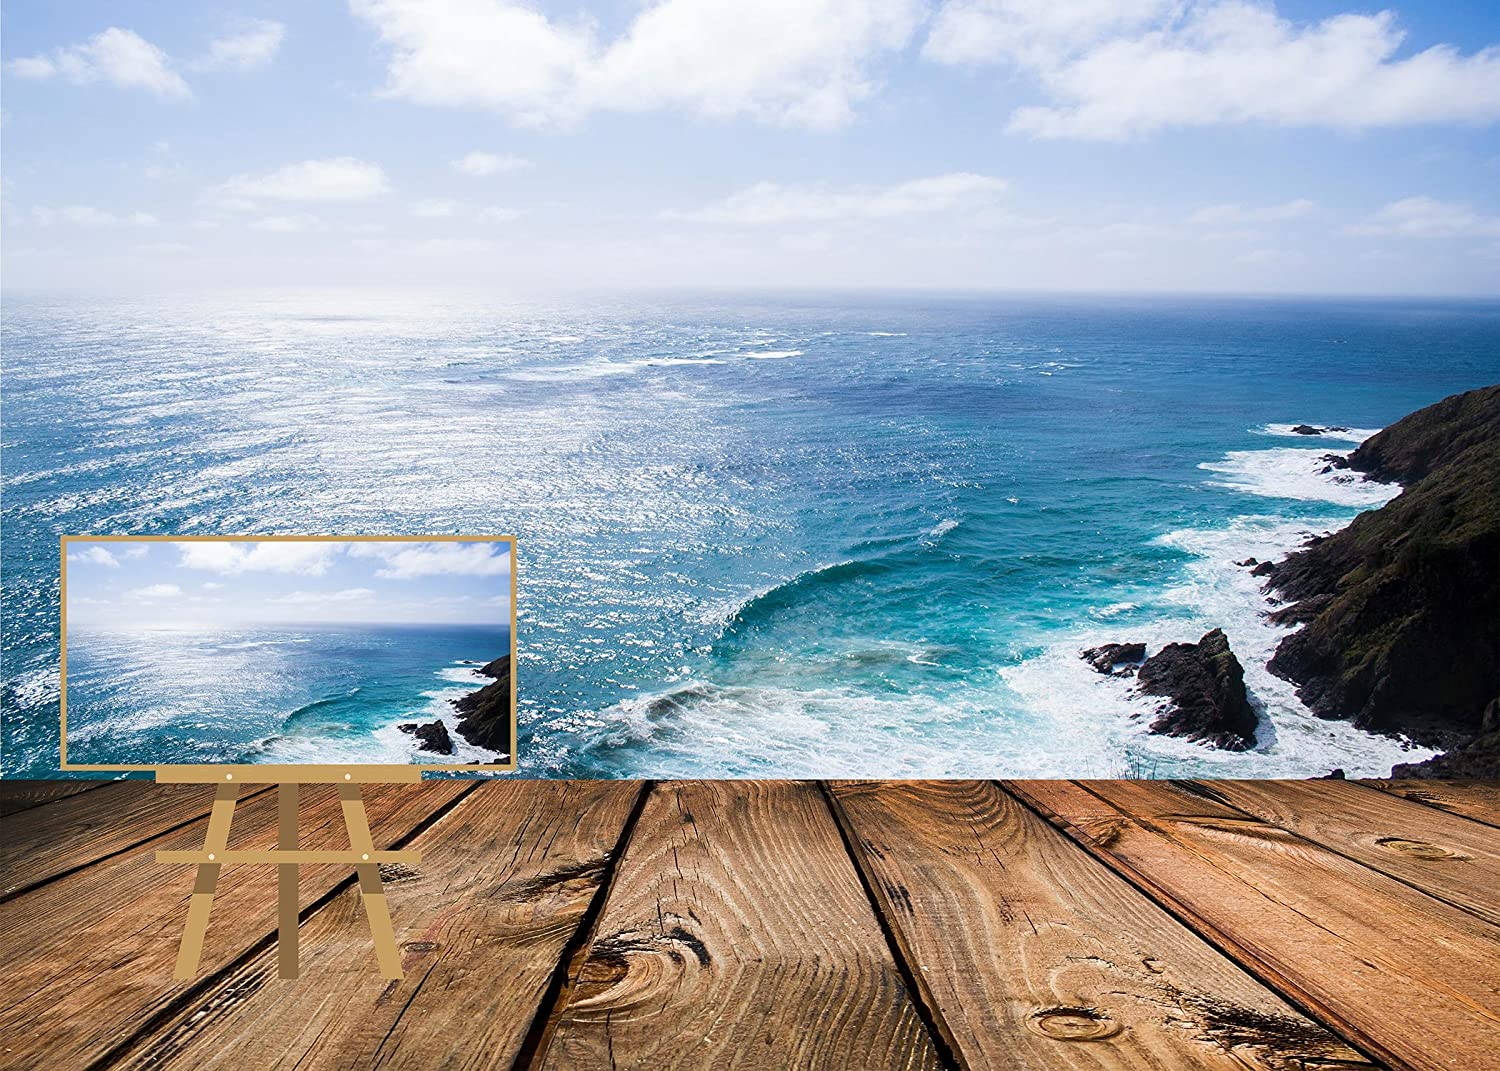 LYLYCTY 7X5ft Creative Photo Backdrop Wooden Trail Creative Perspective Ocean Photography Backdrop Photo Studio Background Props LYK047